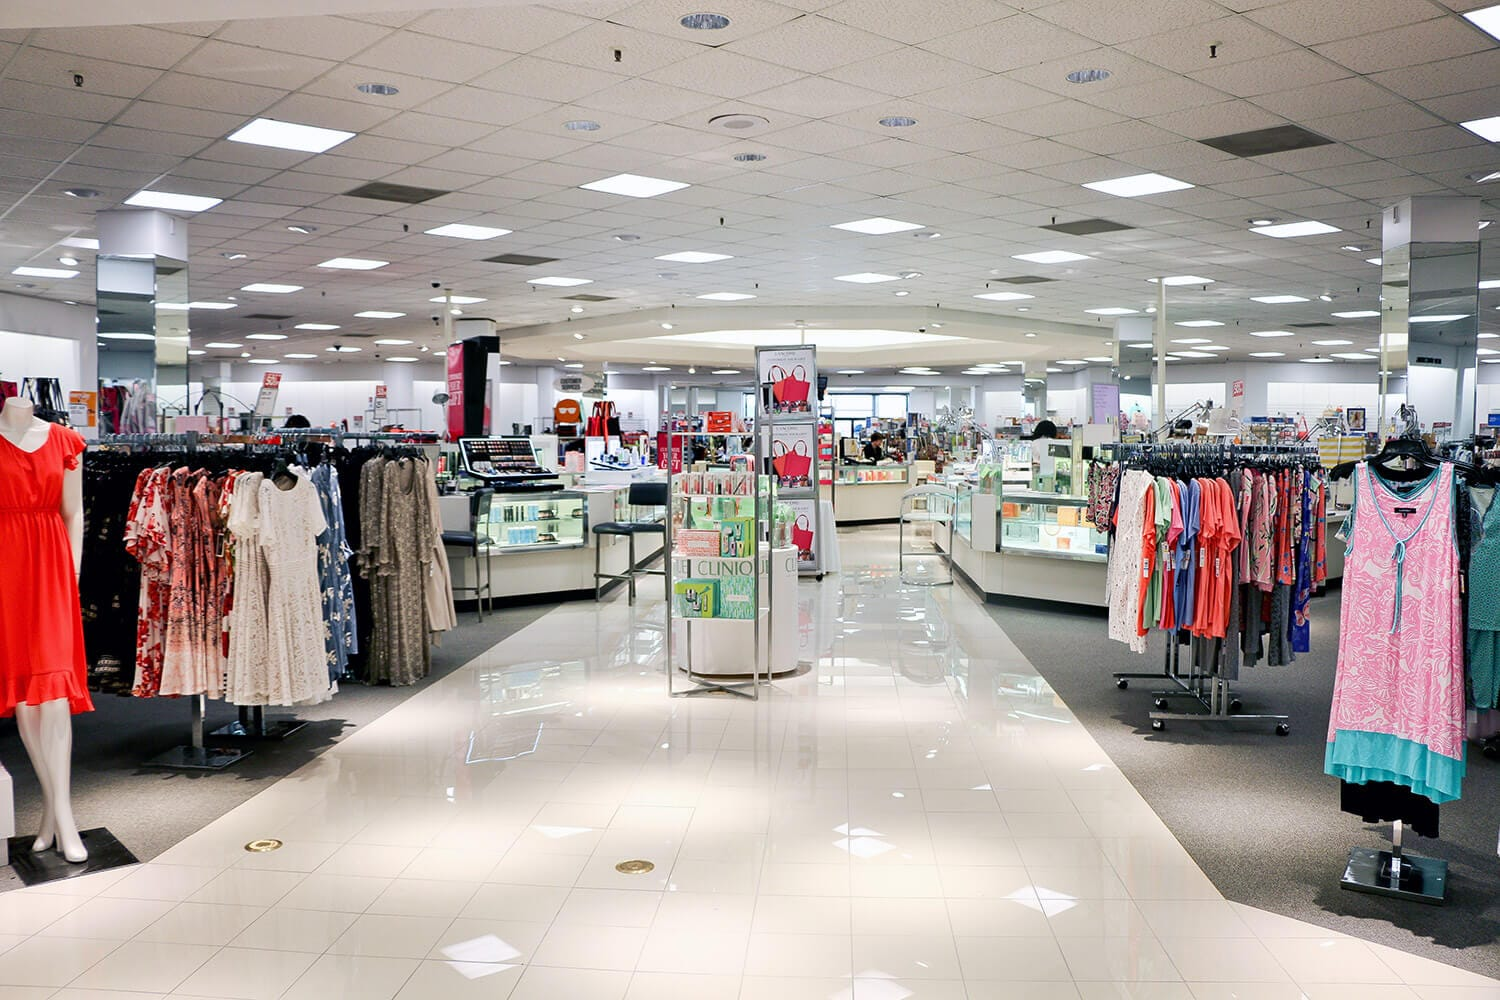 Belk Uses Sas To Satisfy Customers With The Right Sizes In The Right